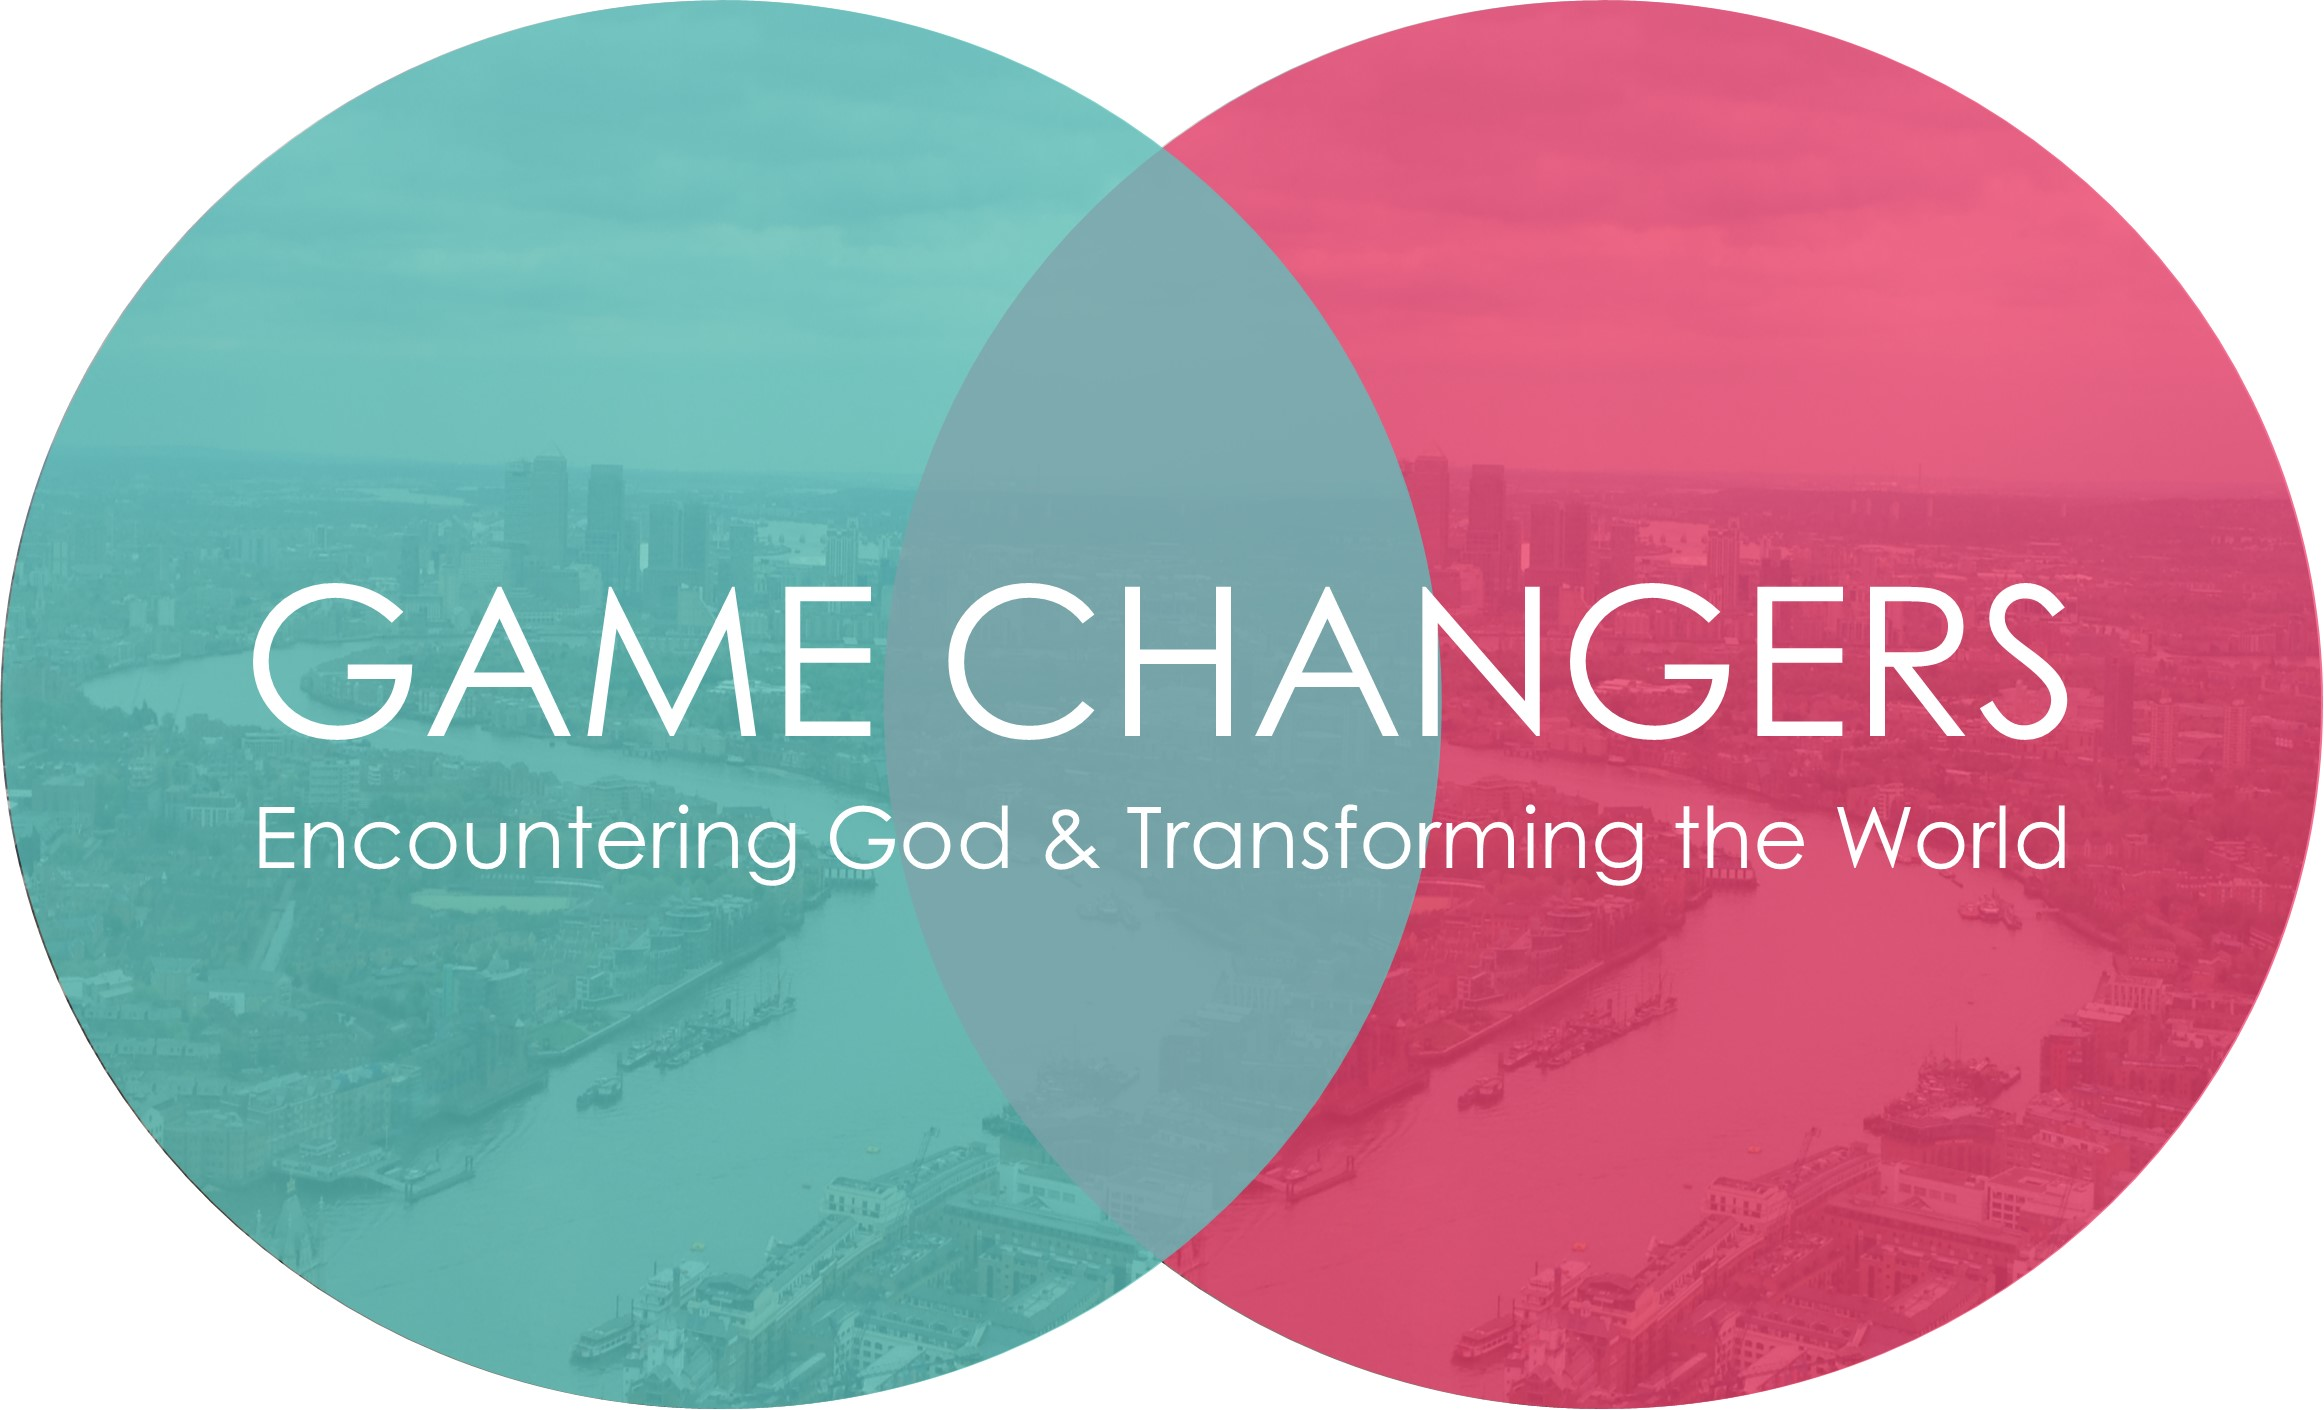 Games Changers logo